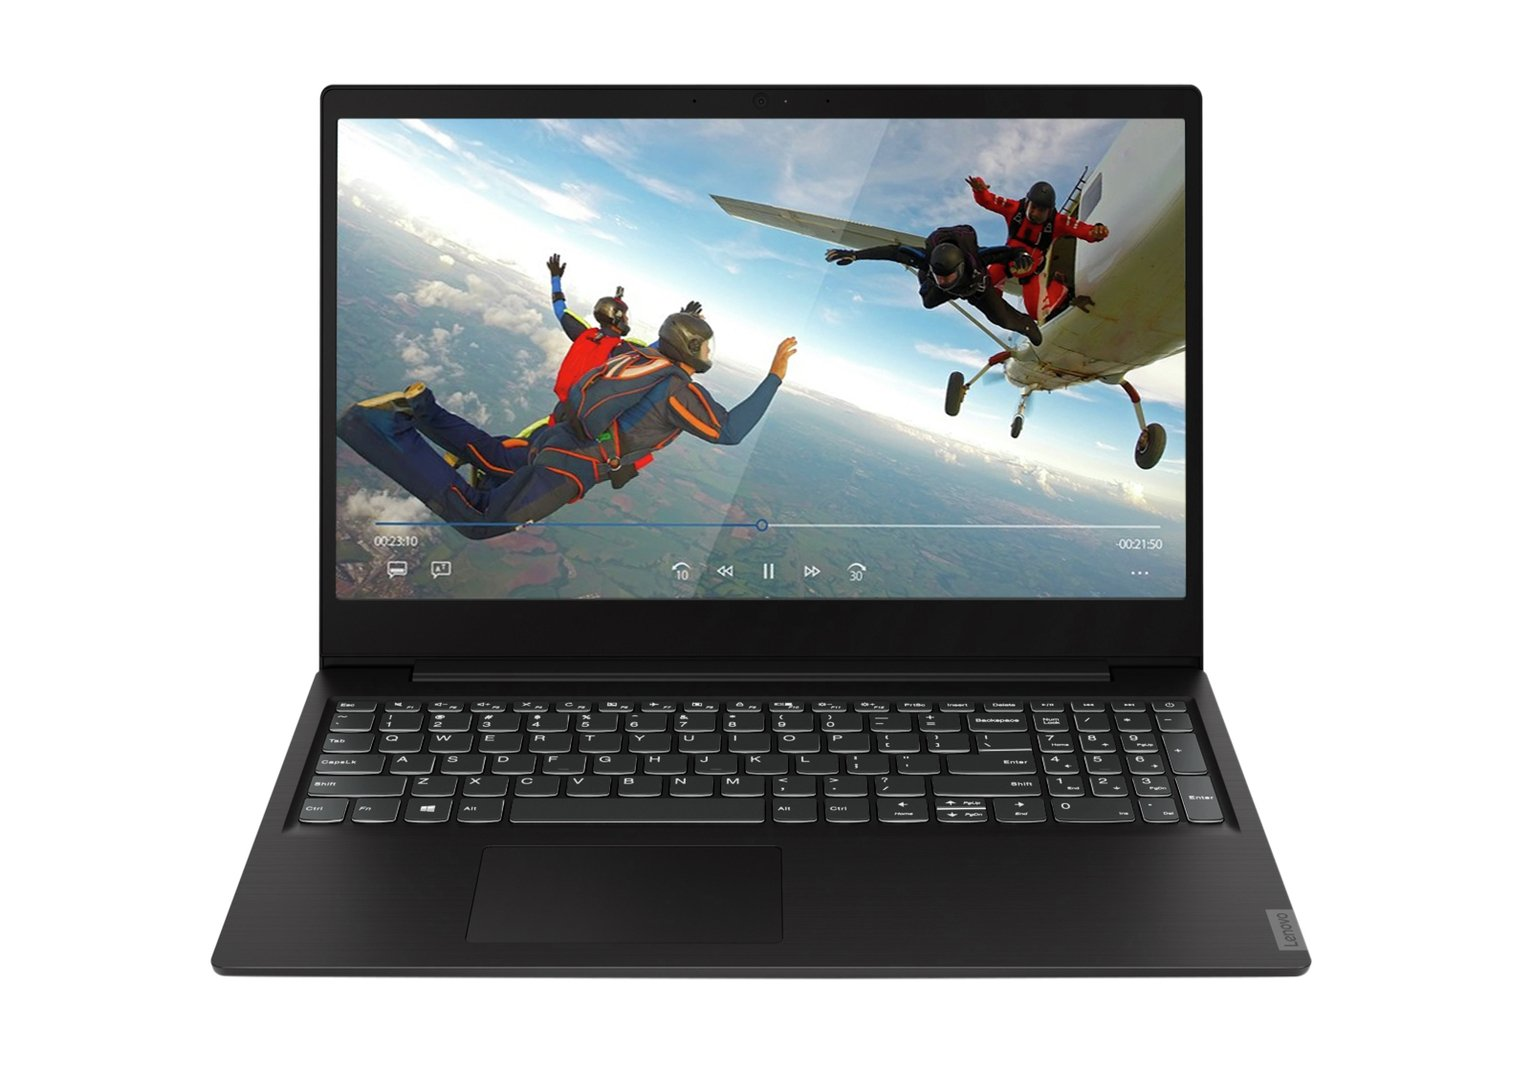 Lenovo IdeaPad S340 15.6in i7 8GB 2TB FHD Laptop - Black